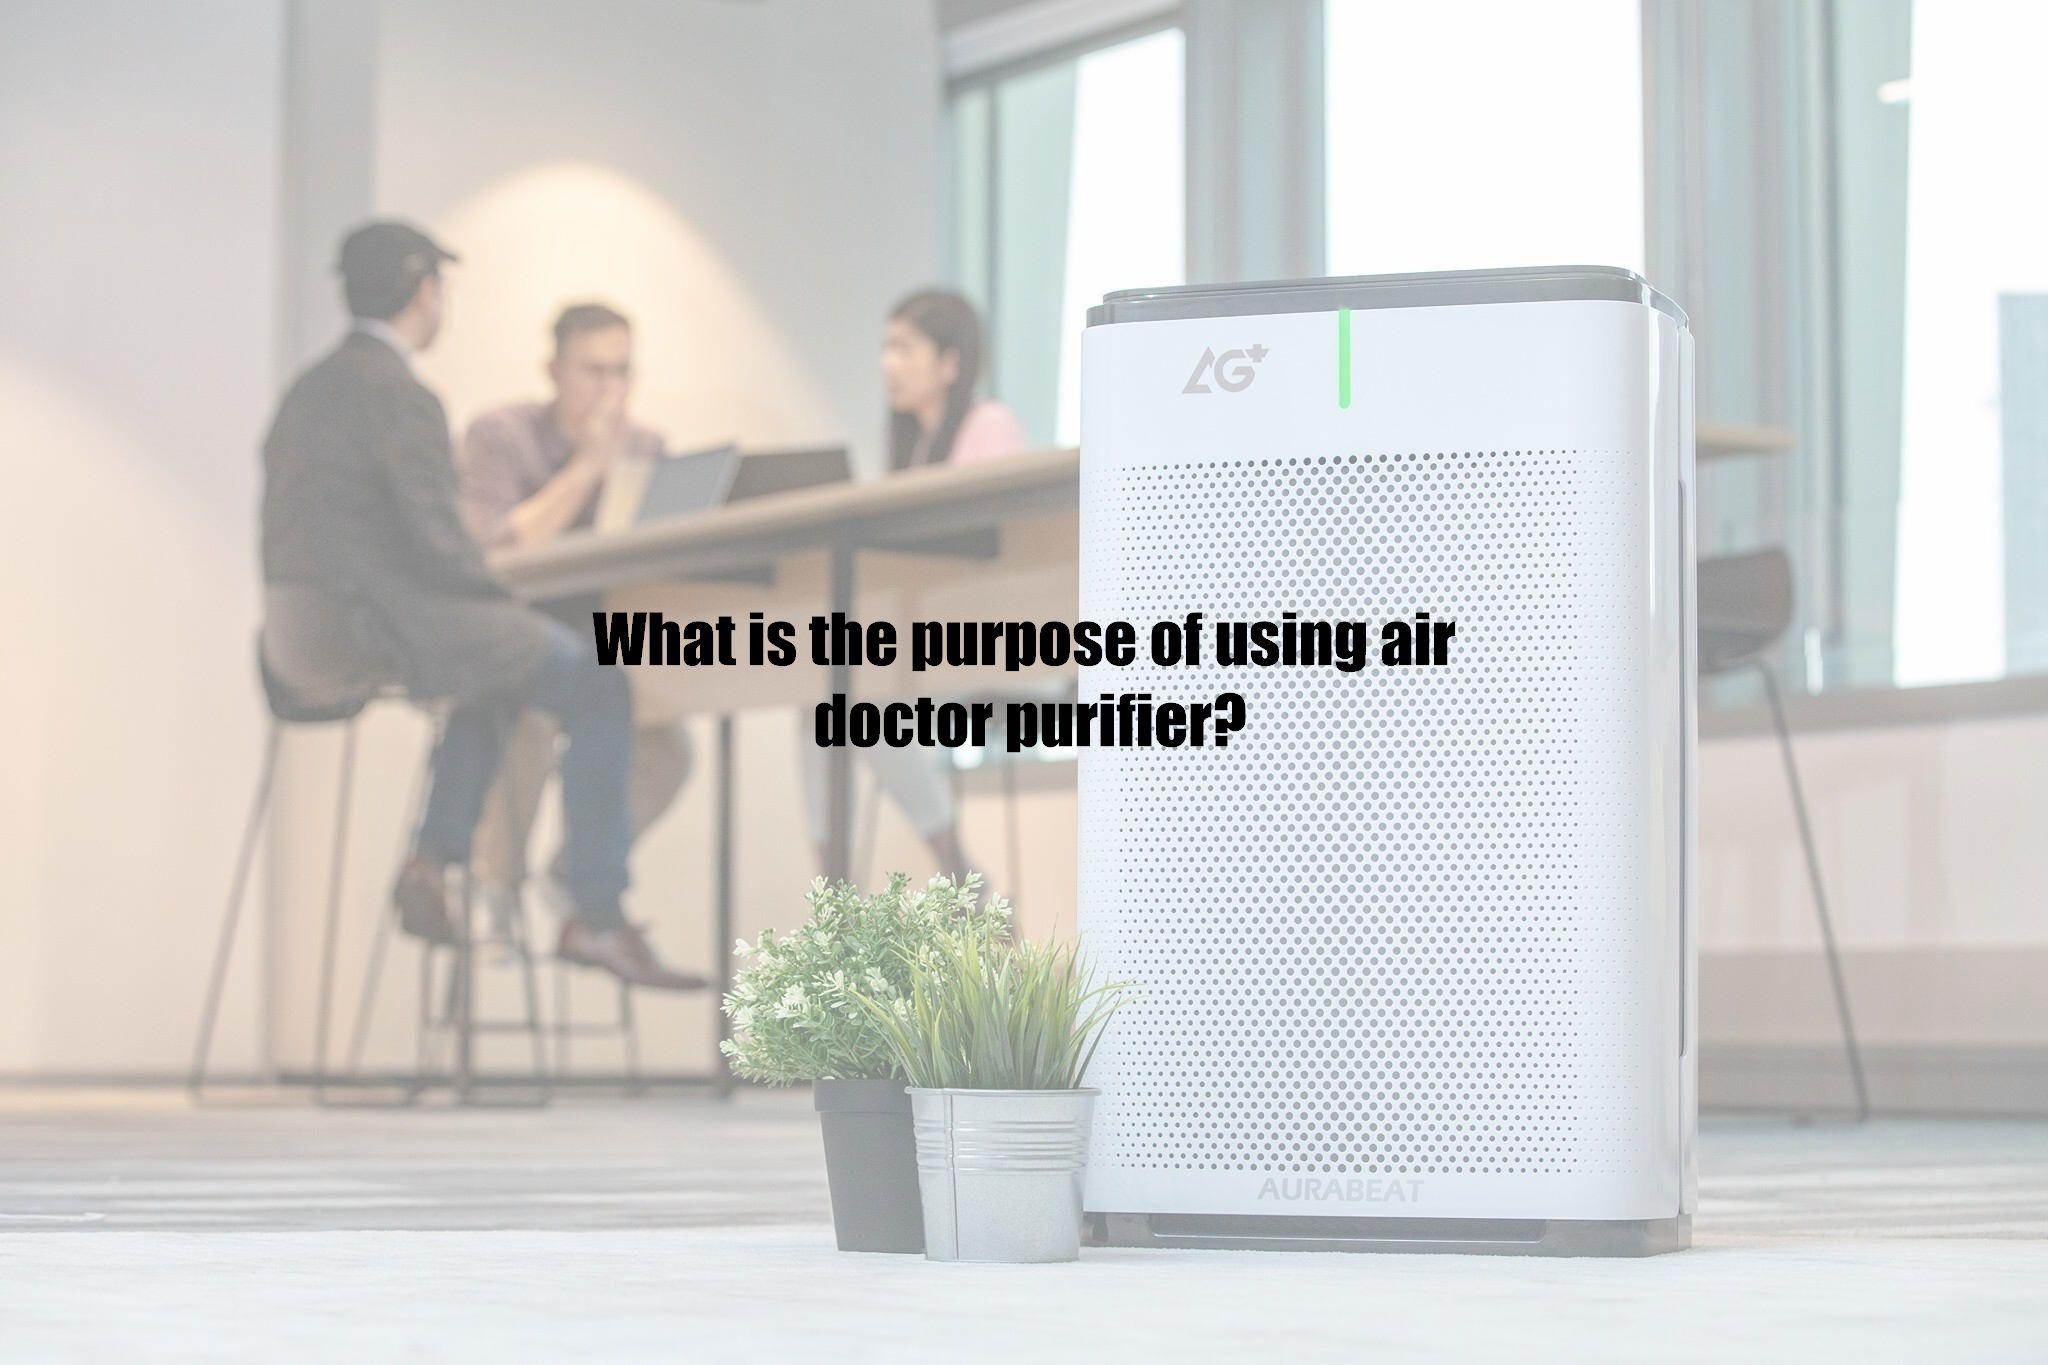 What is the purpose of using air doctor purifier?